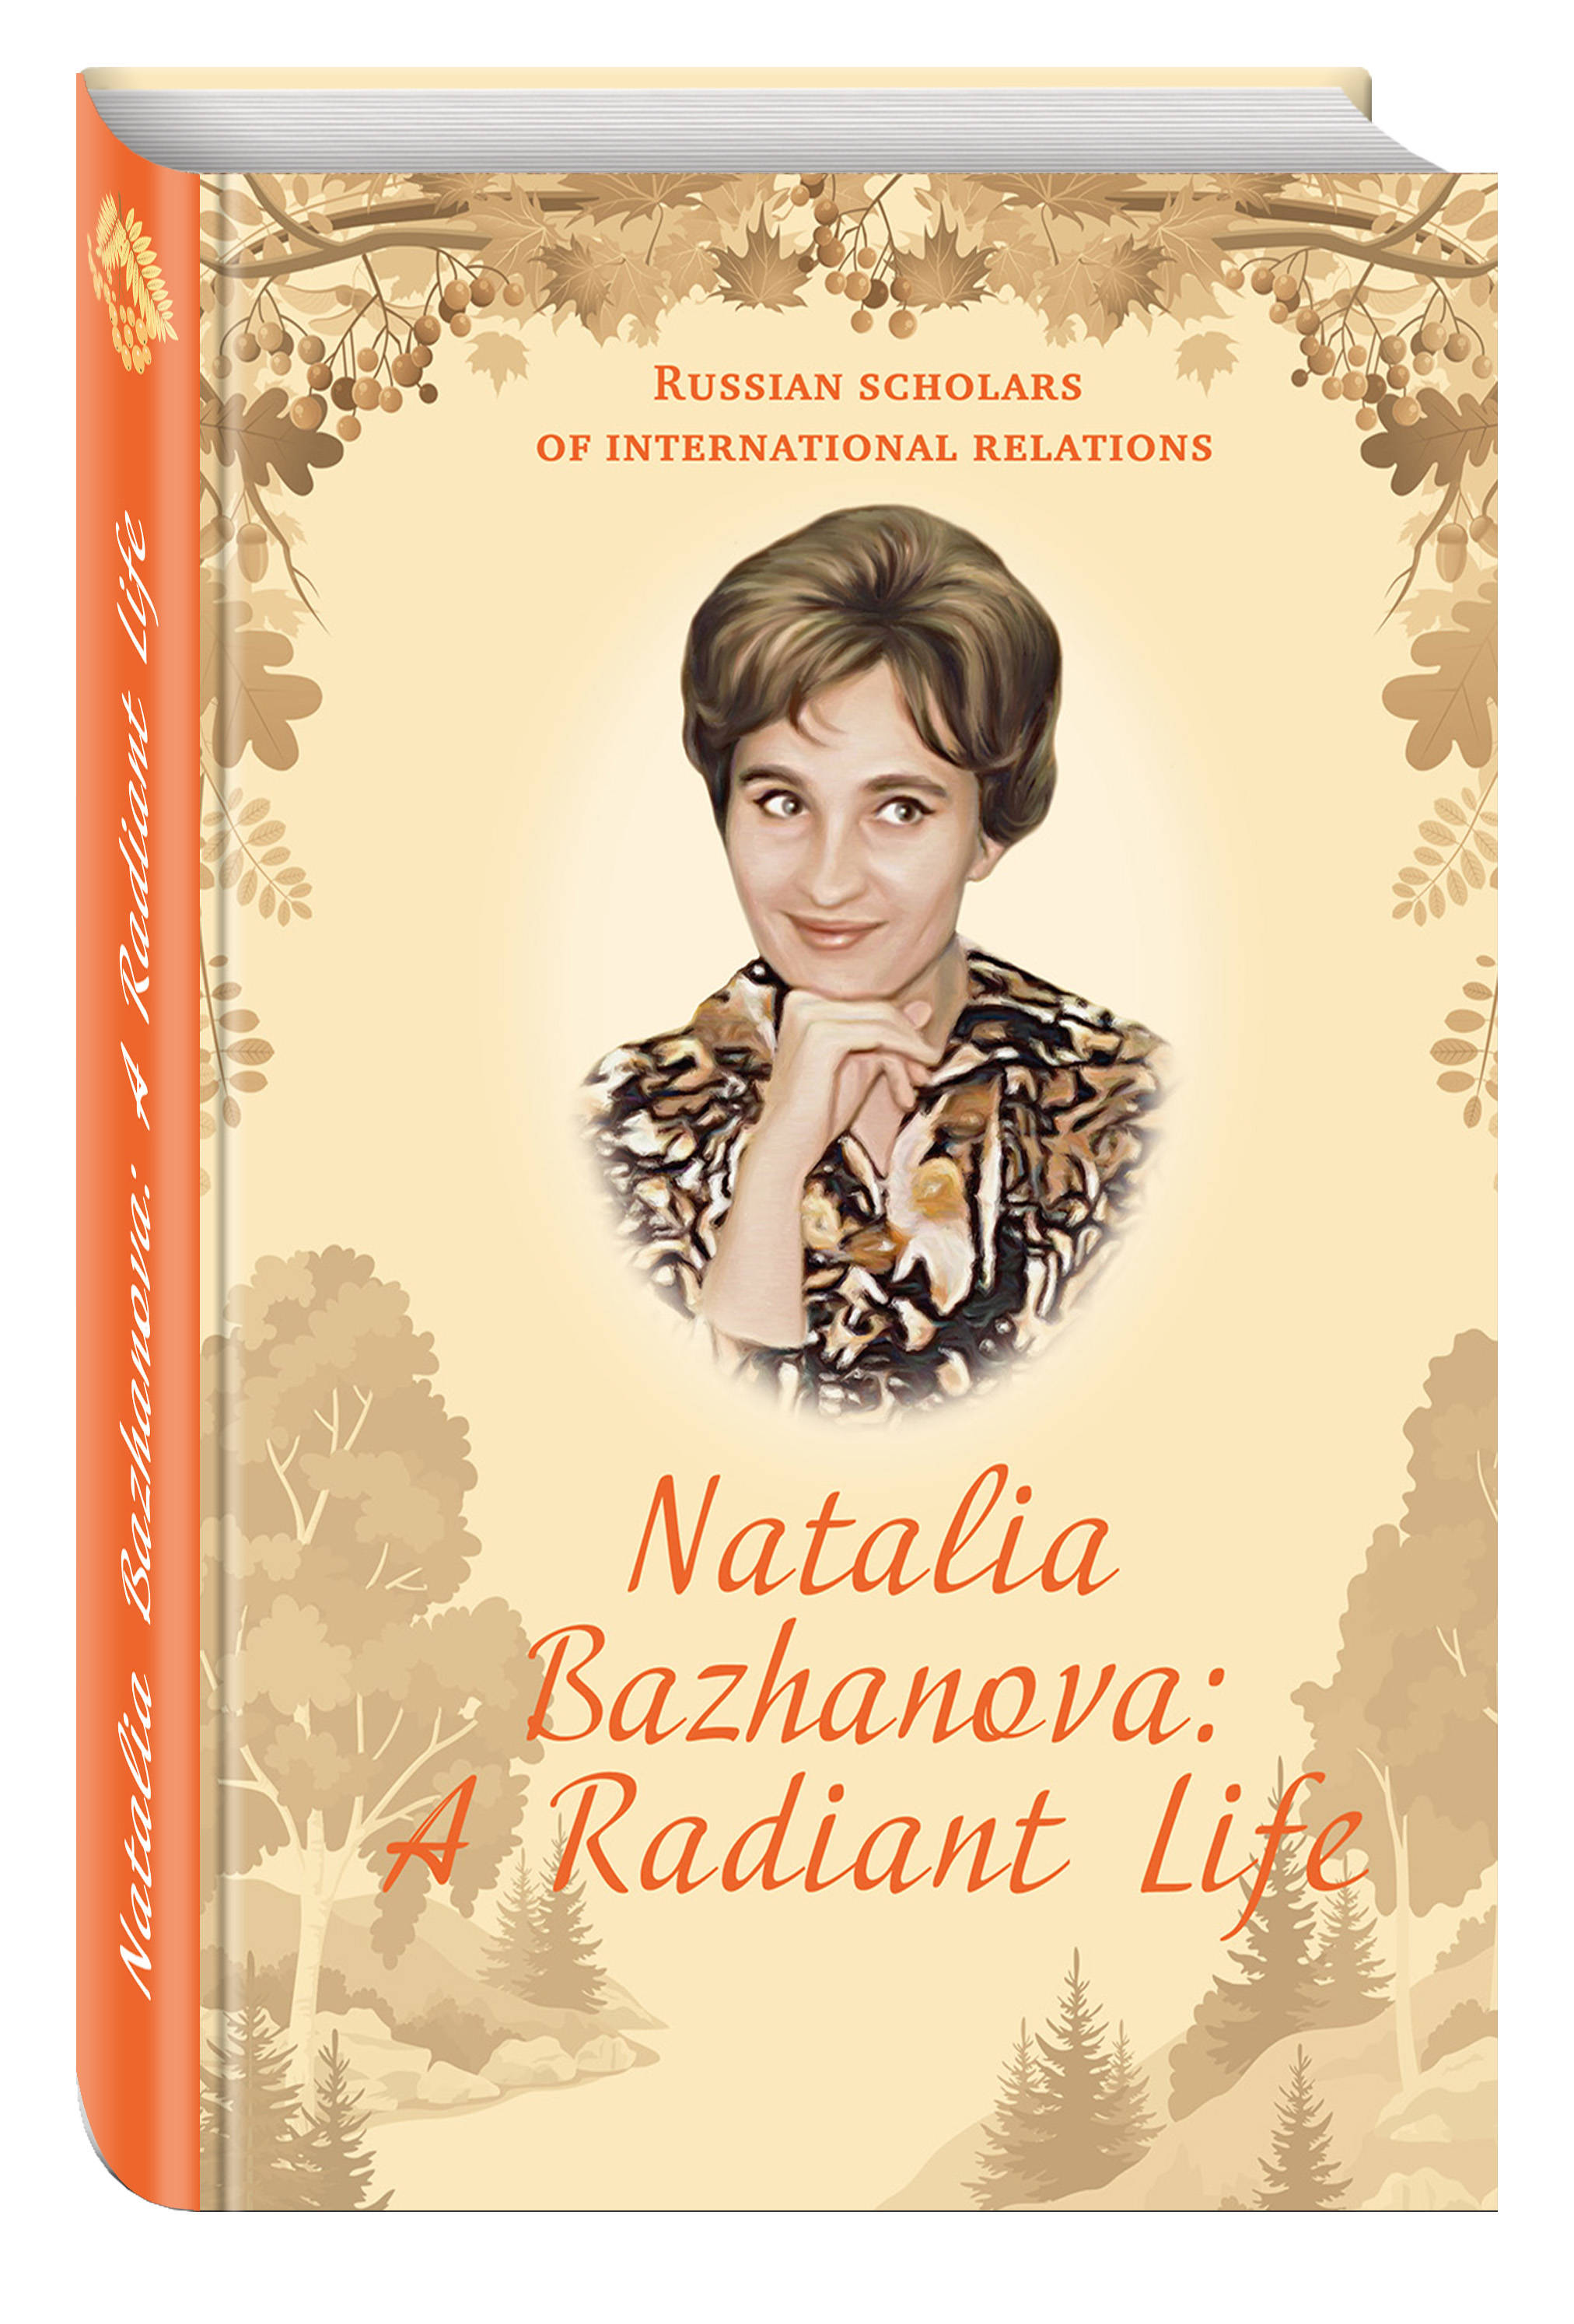 Natalia Bazhanova: A Radiant Life сборник статей science xxi century proceedings of materials the international scientific conference czech republic karlovy vary – russia moscow 30 31 july 2015